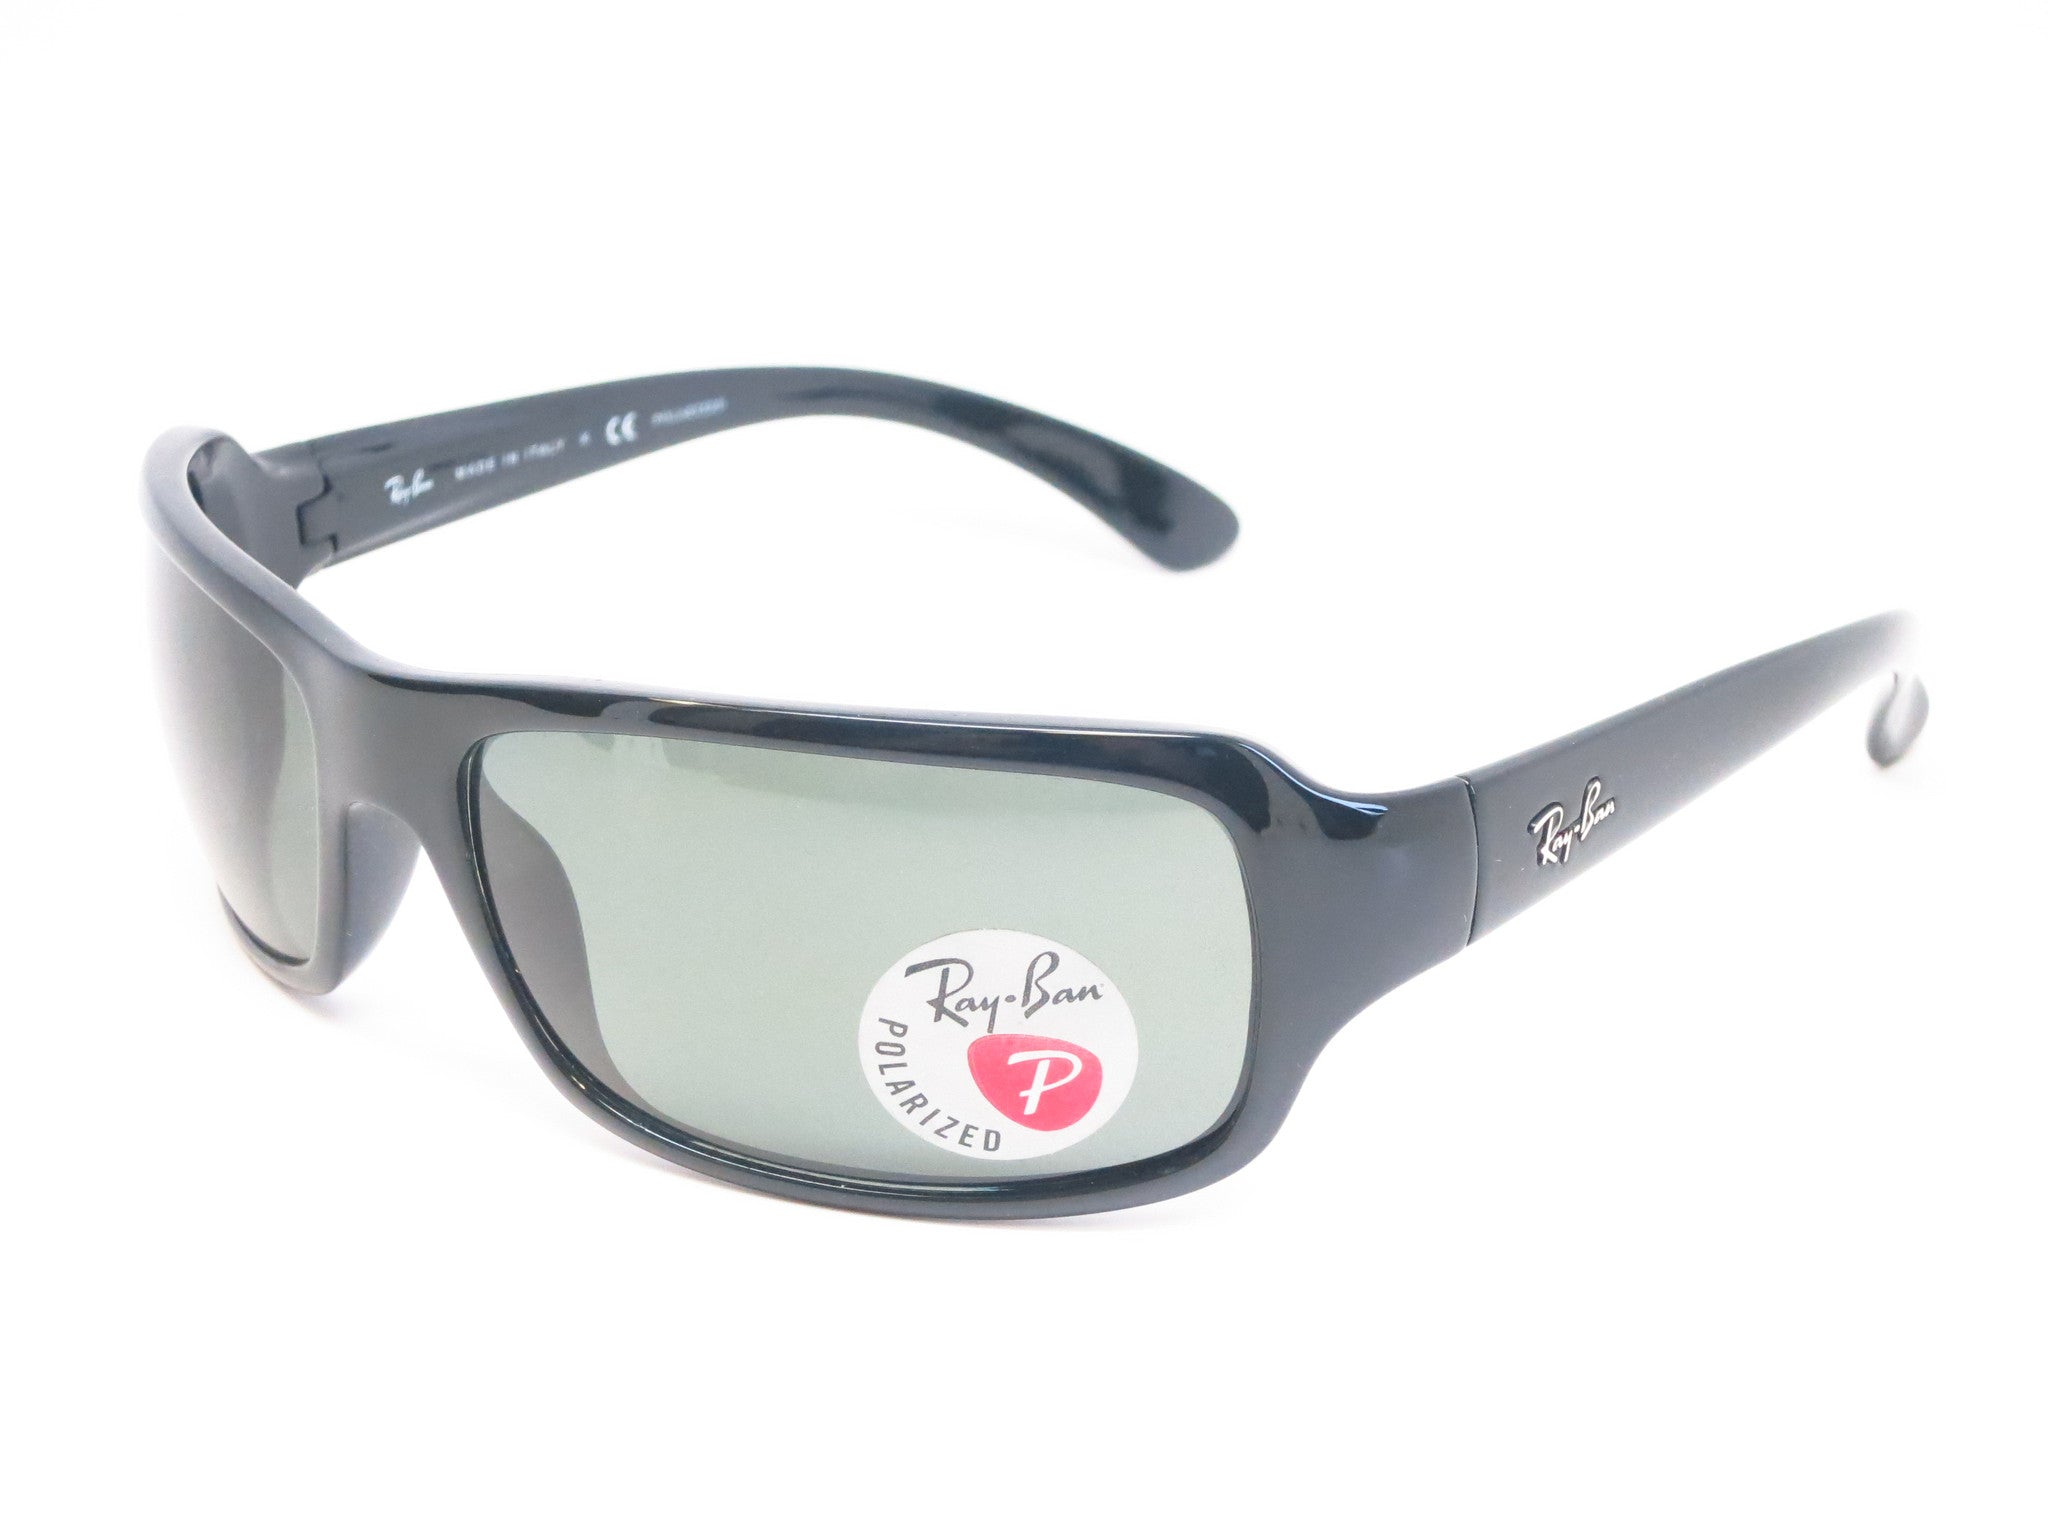 a9eec0adbc Ray-Ban RB 4075 HighStreet 601 58 Black Sunglasses - RayBan - Eye Heart ...